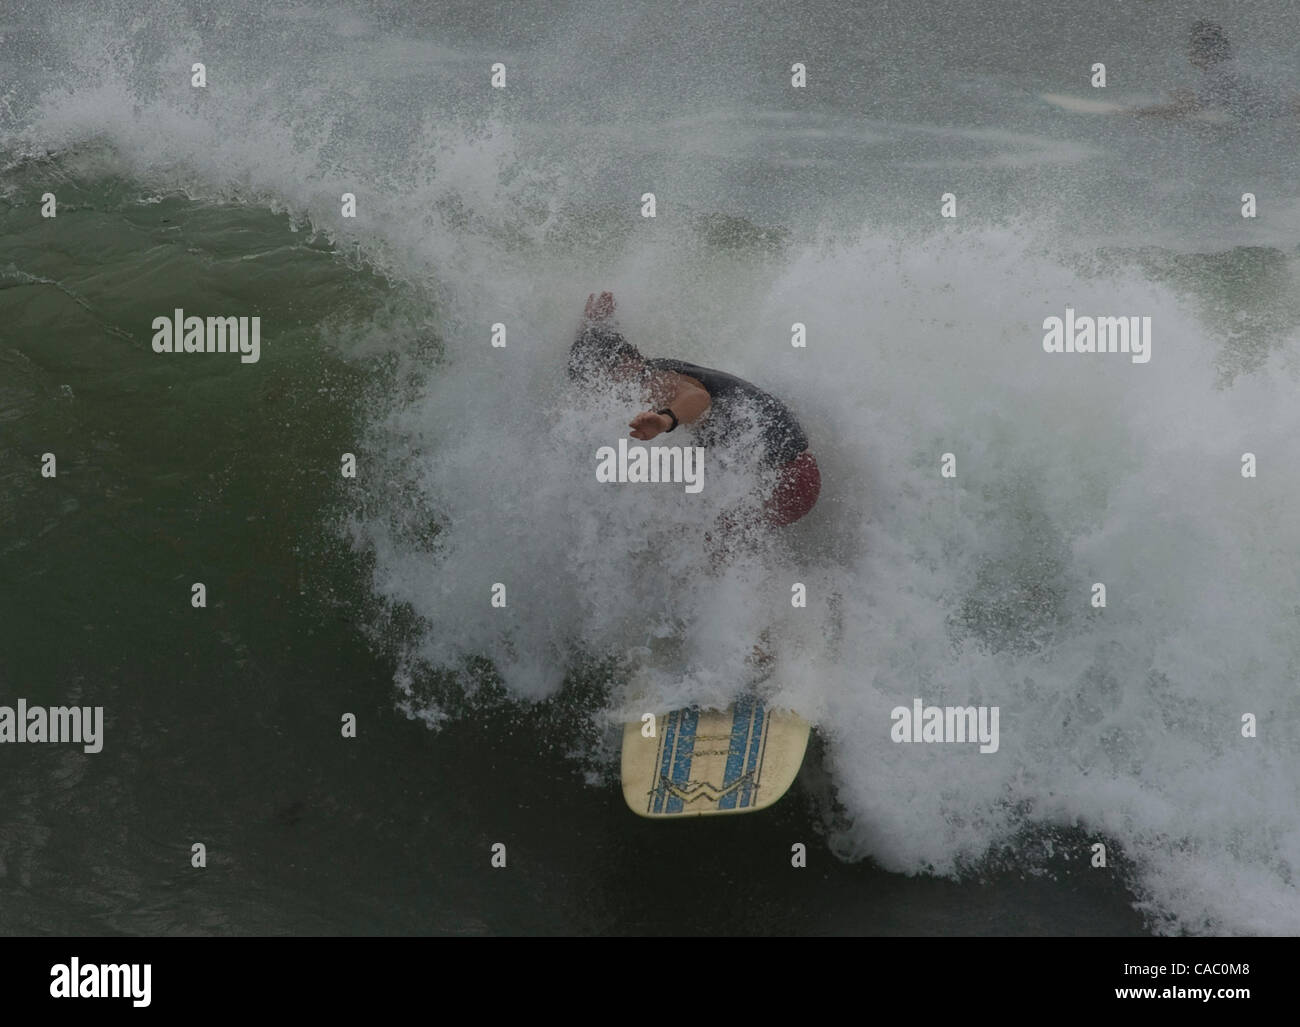 June 29, 2010 - Port Aransas, Texas, USA - 06/29/2010. A surfer takes advantage of the swell created by hurricane - Stock Image